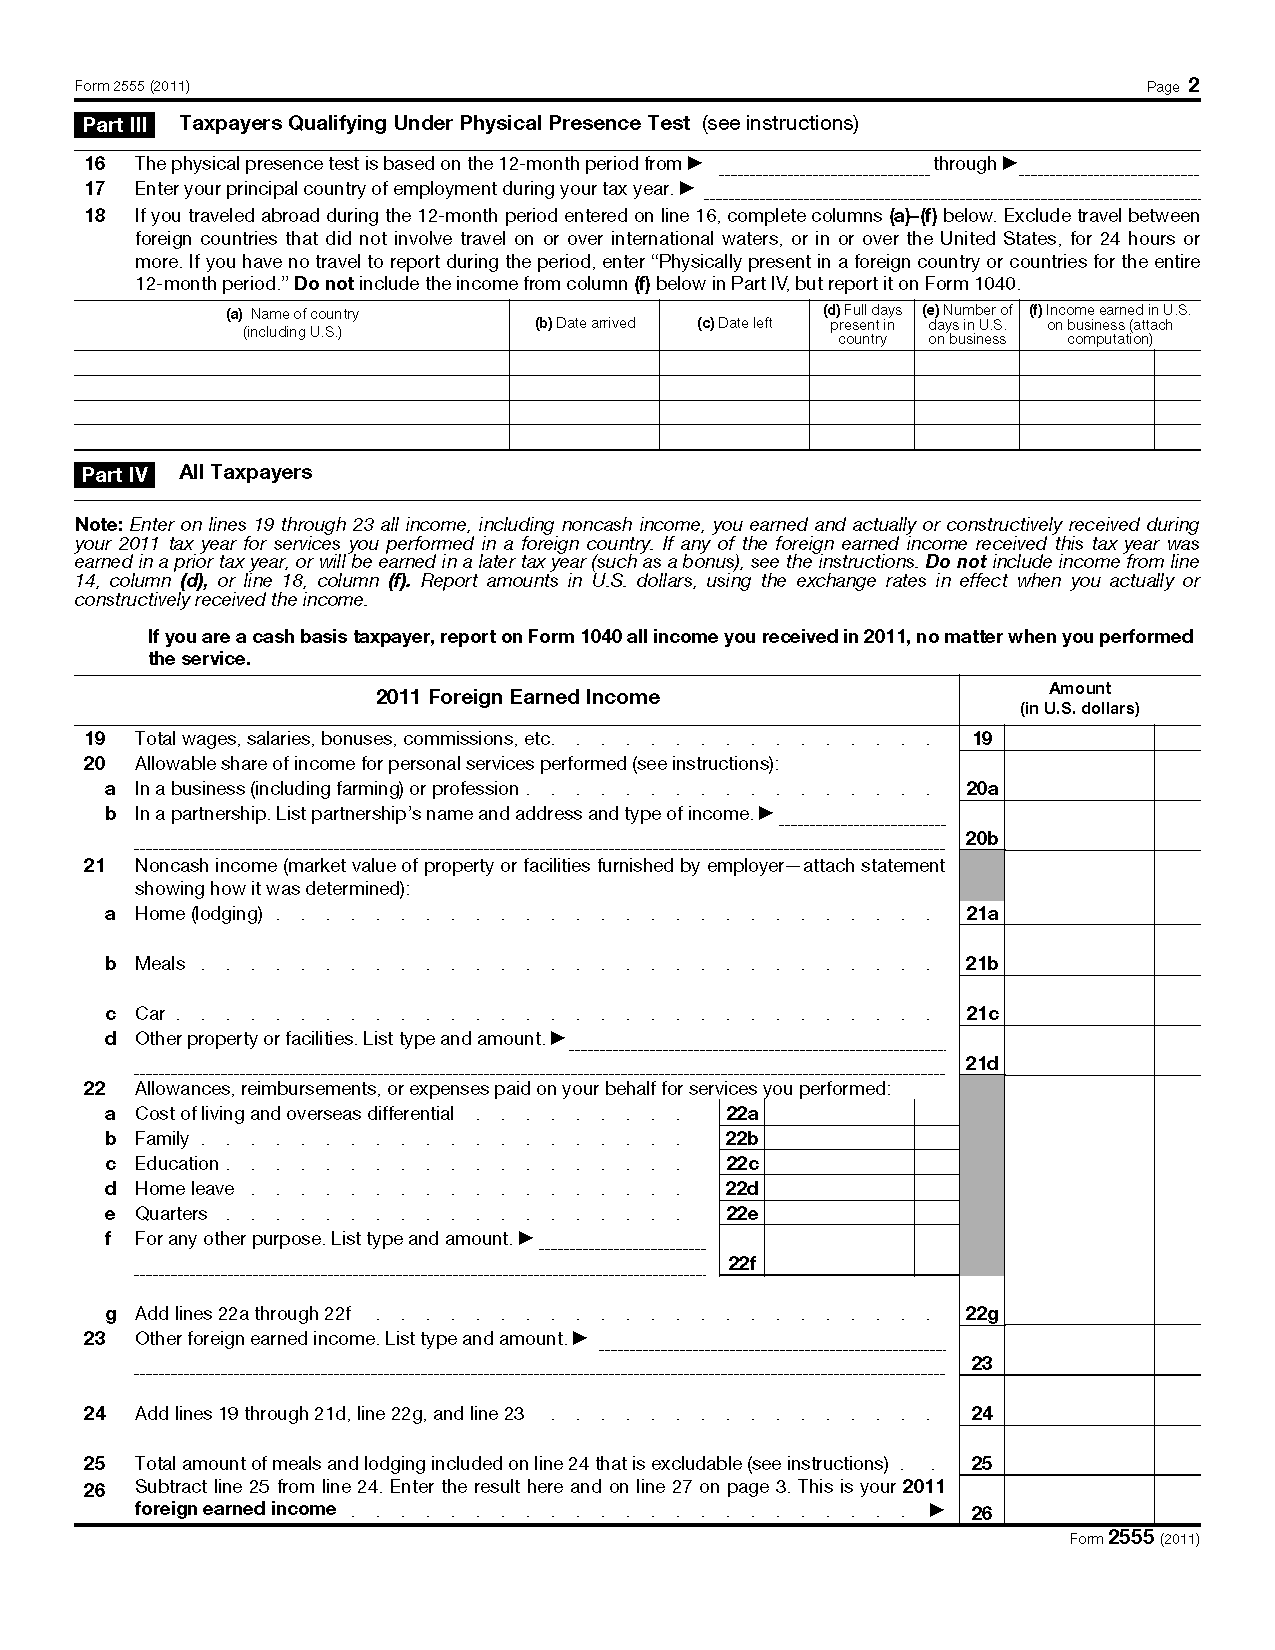 Form Foreign Earned Income